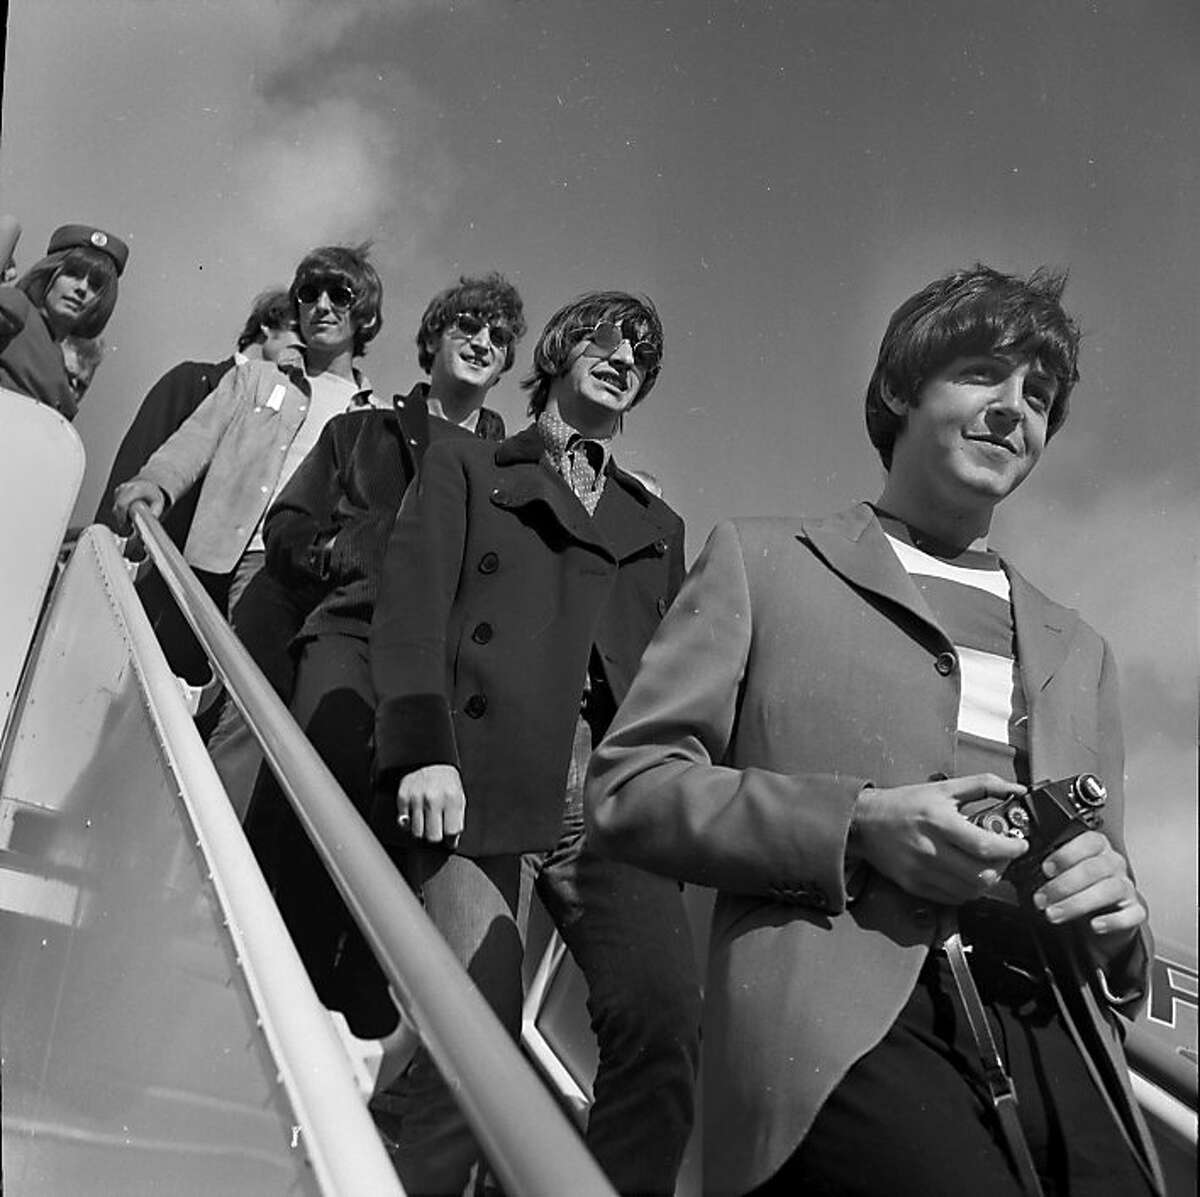 BEATLES6-29AUG1966-BC The Beatles arrive in San Francisco on August 29, 1966 for their concert at Candlestick Park. Paul McCartney, Ringo Starr, John Lennon and George Harrison are shown walking down the stairs from an airplane. CENTURY BOOK